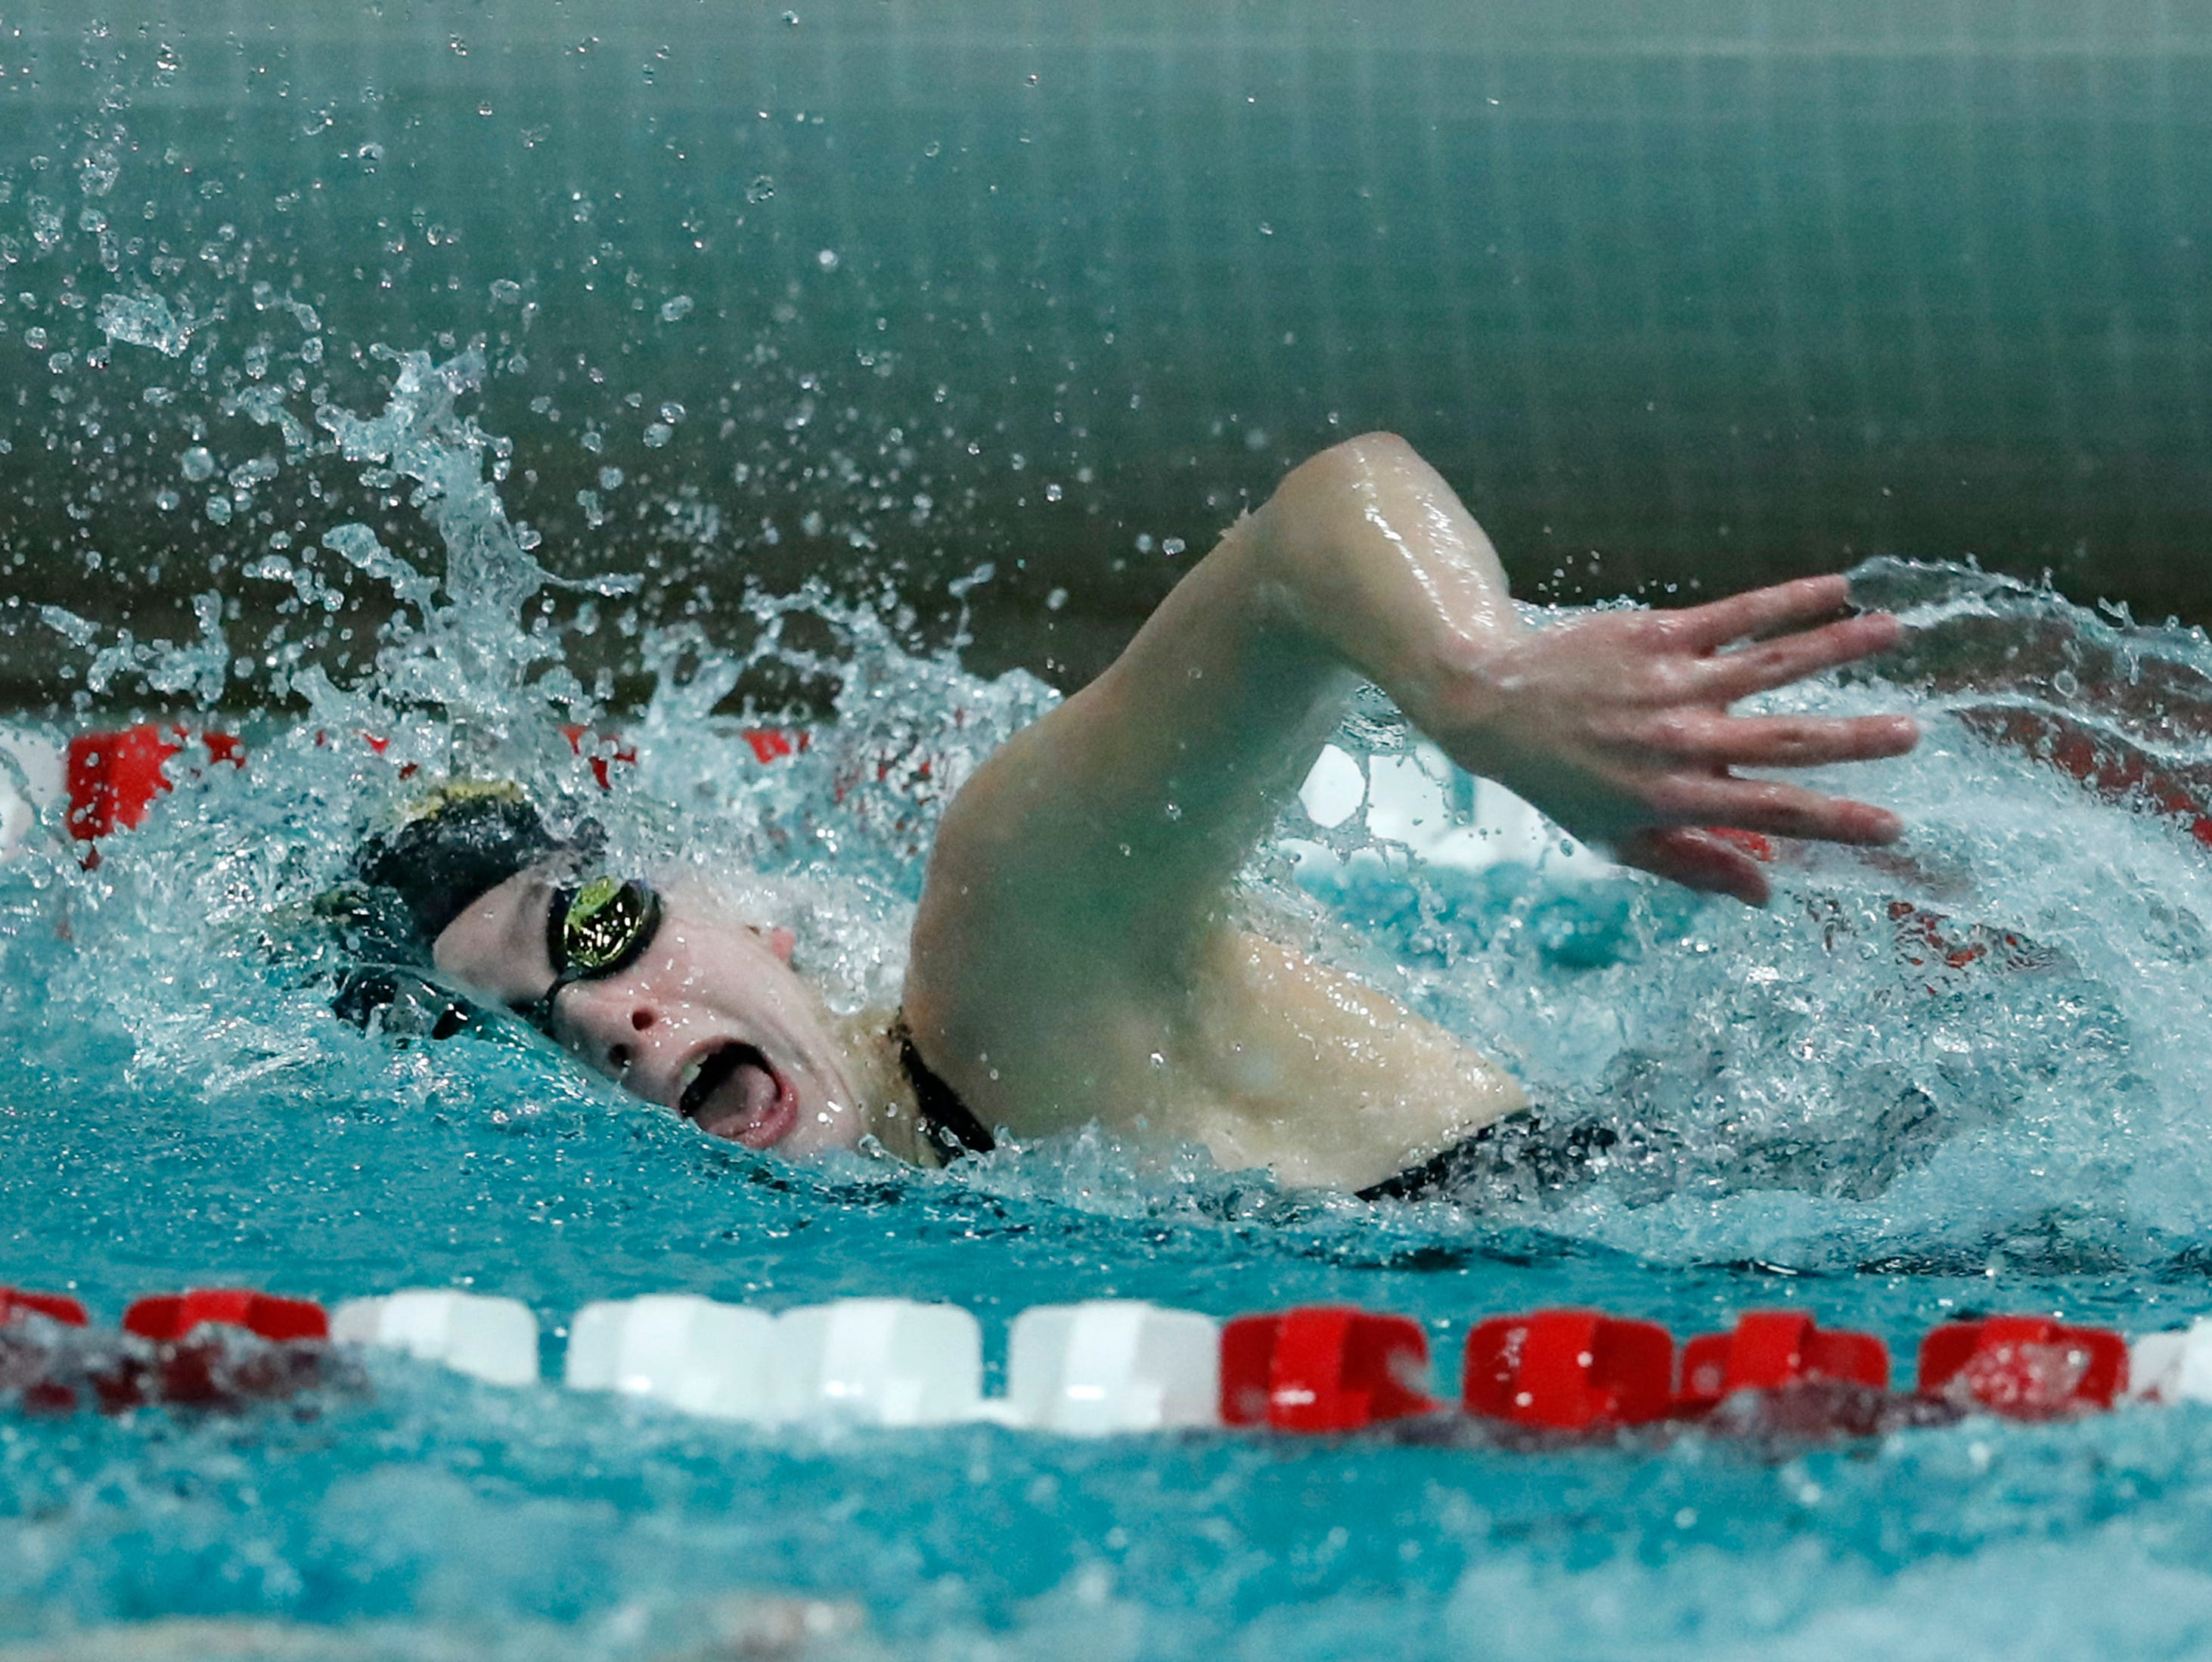 The Ashwaubenon 400 yard freestyle relay team races during the WIAA Division 2 State Swimming and Diving meet Friday, Nov. 9, 2018, at the UW Natatorium in Madison, Wis.Danny Damiani/USA TODAY NETWORK-Wisconsin